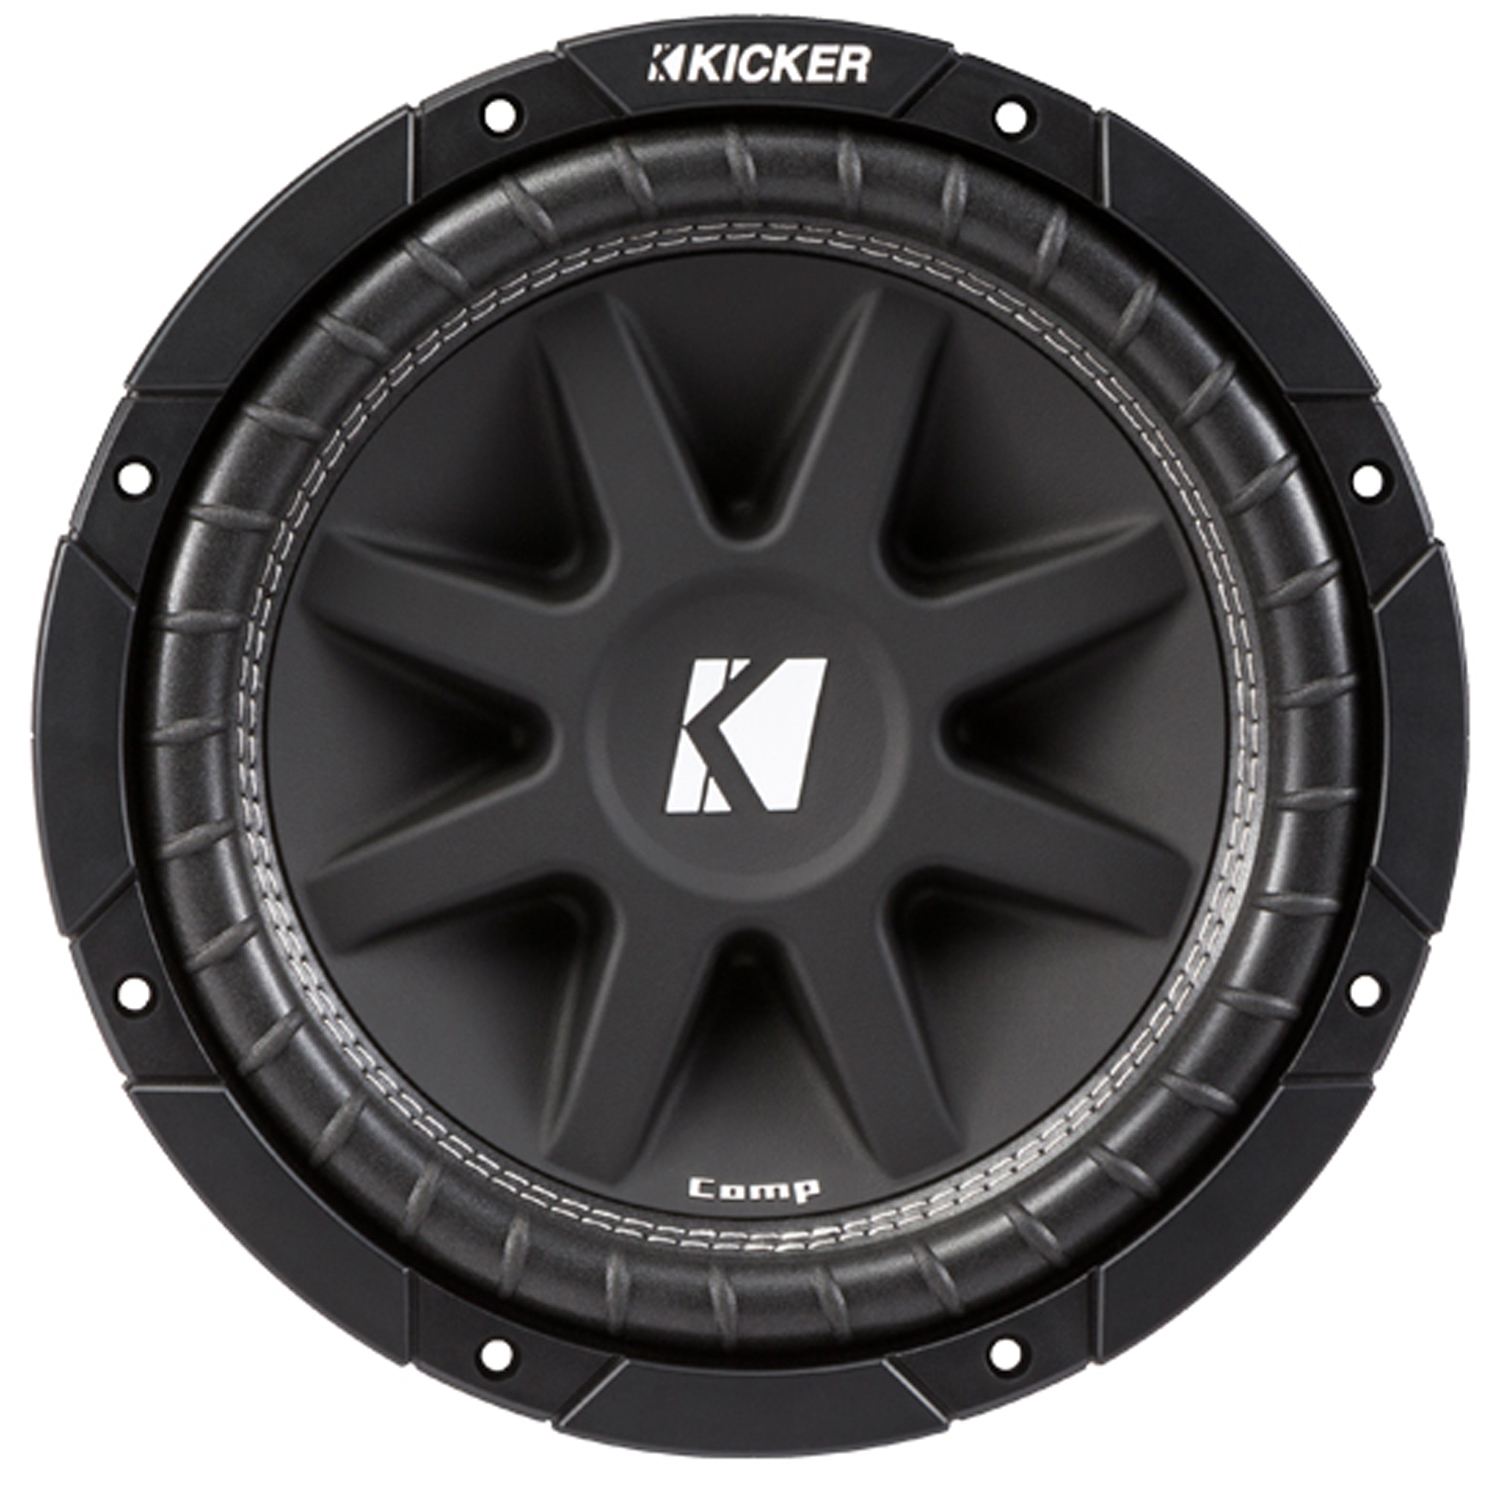 Kicker 43C104 10-Inch 300 Watts Max Power Single 4 Ohm Car Subwoofer